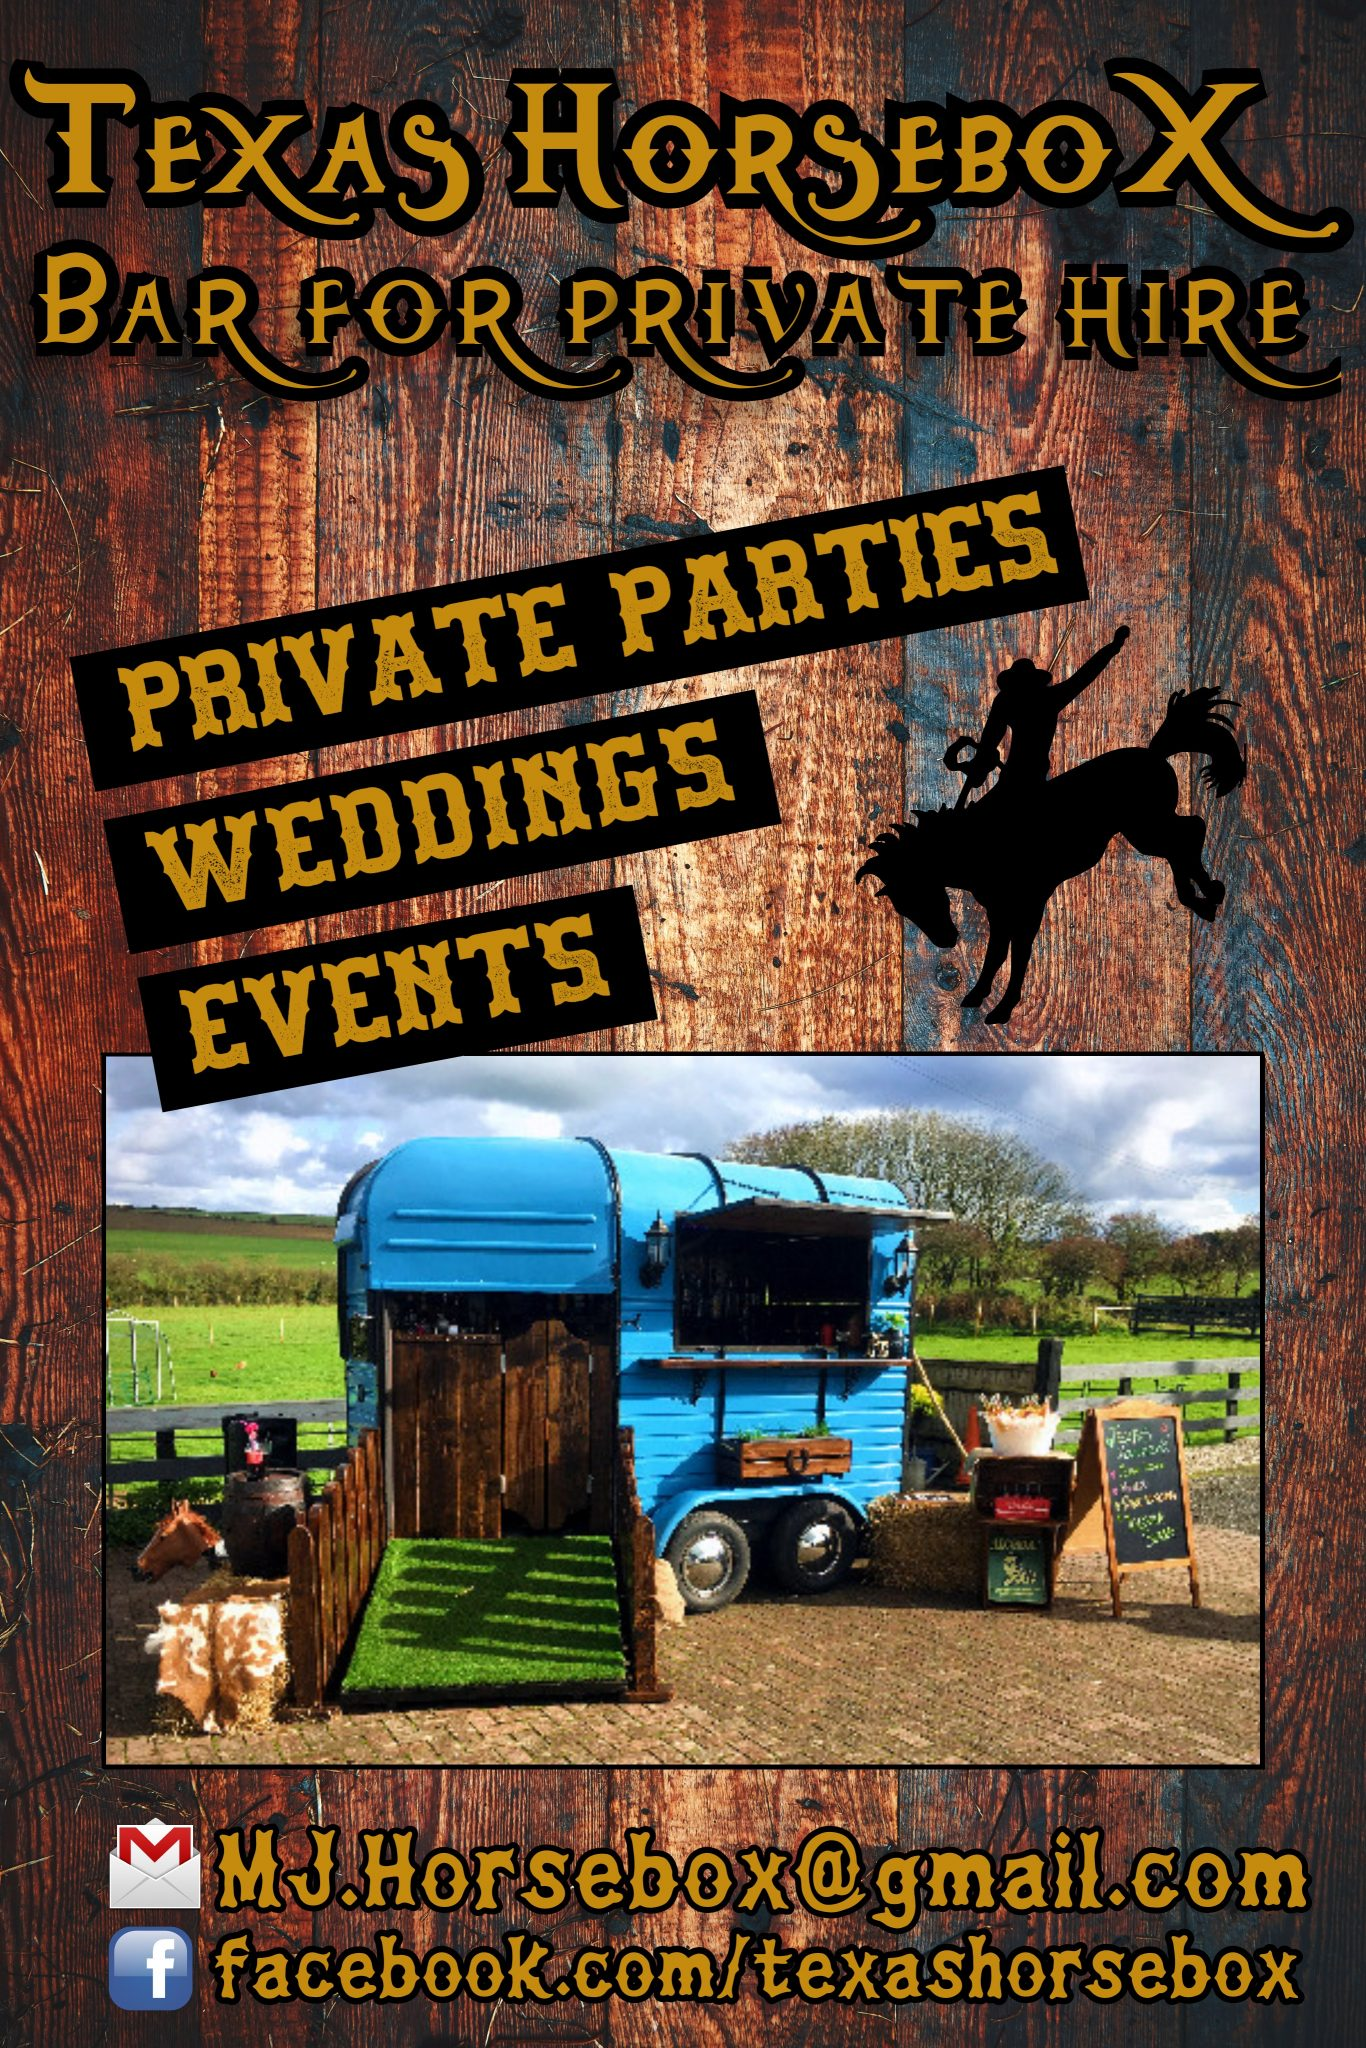 Texas Horsebox bar for private hire